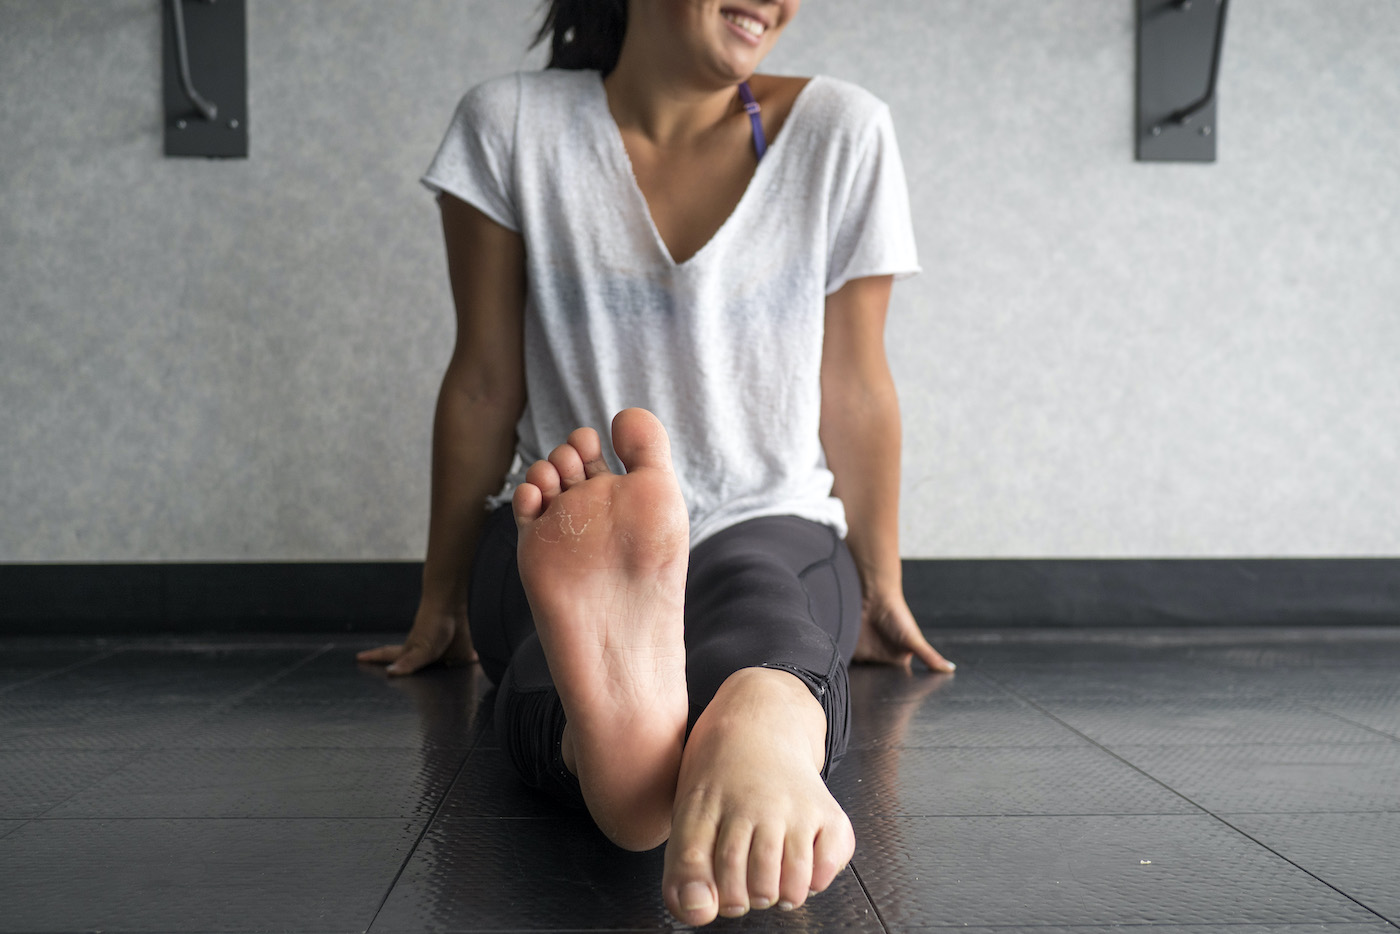 Thumbnail for Podiatrists Swear By These 5 Oh-So-Simple Flat Feet Exercises To Reduce Pain and Prevent Injury